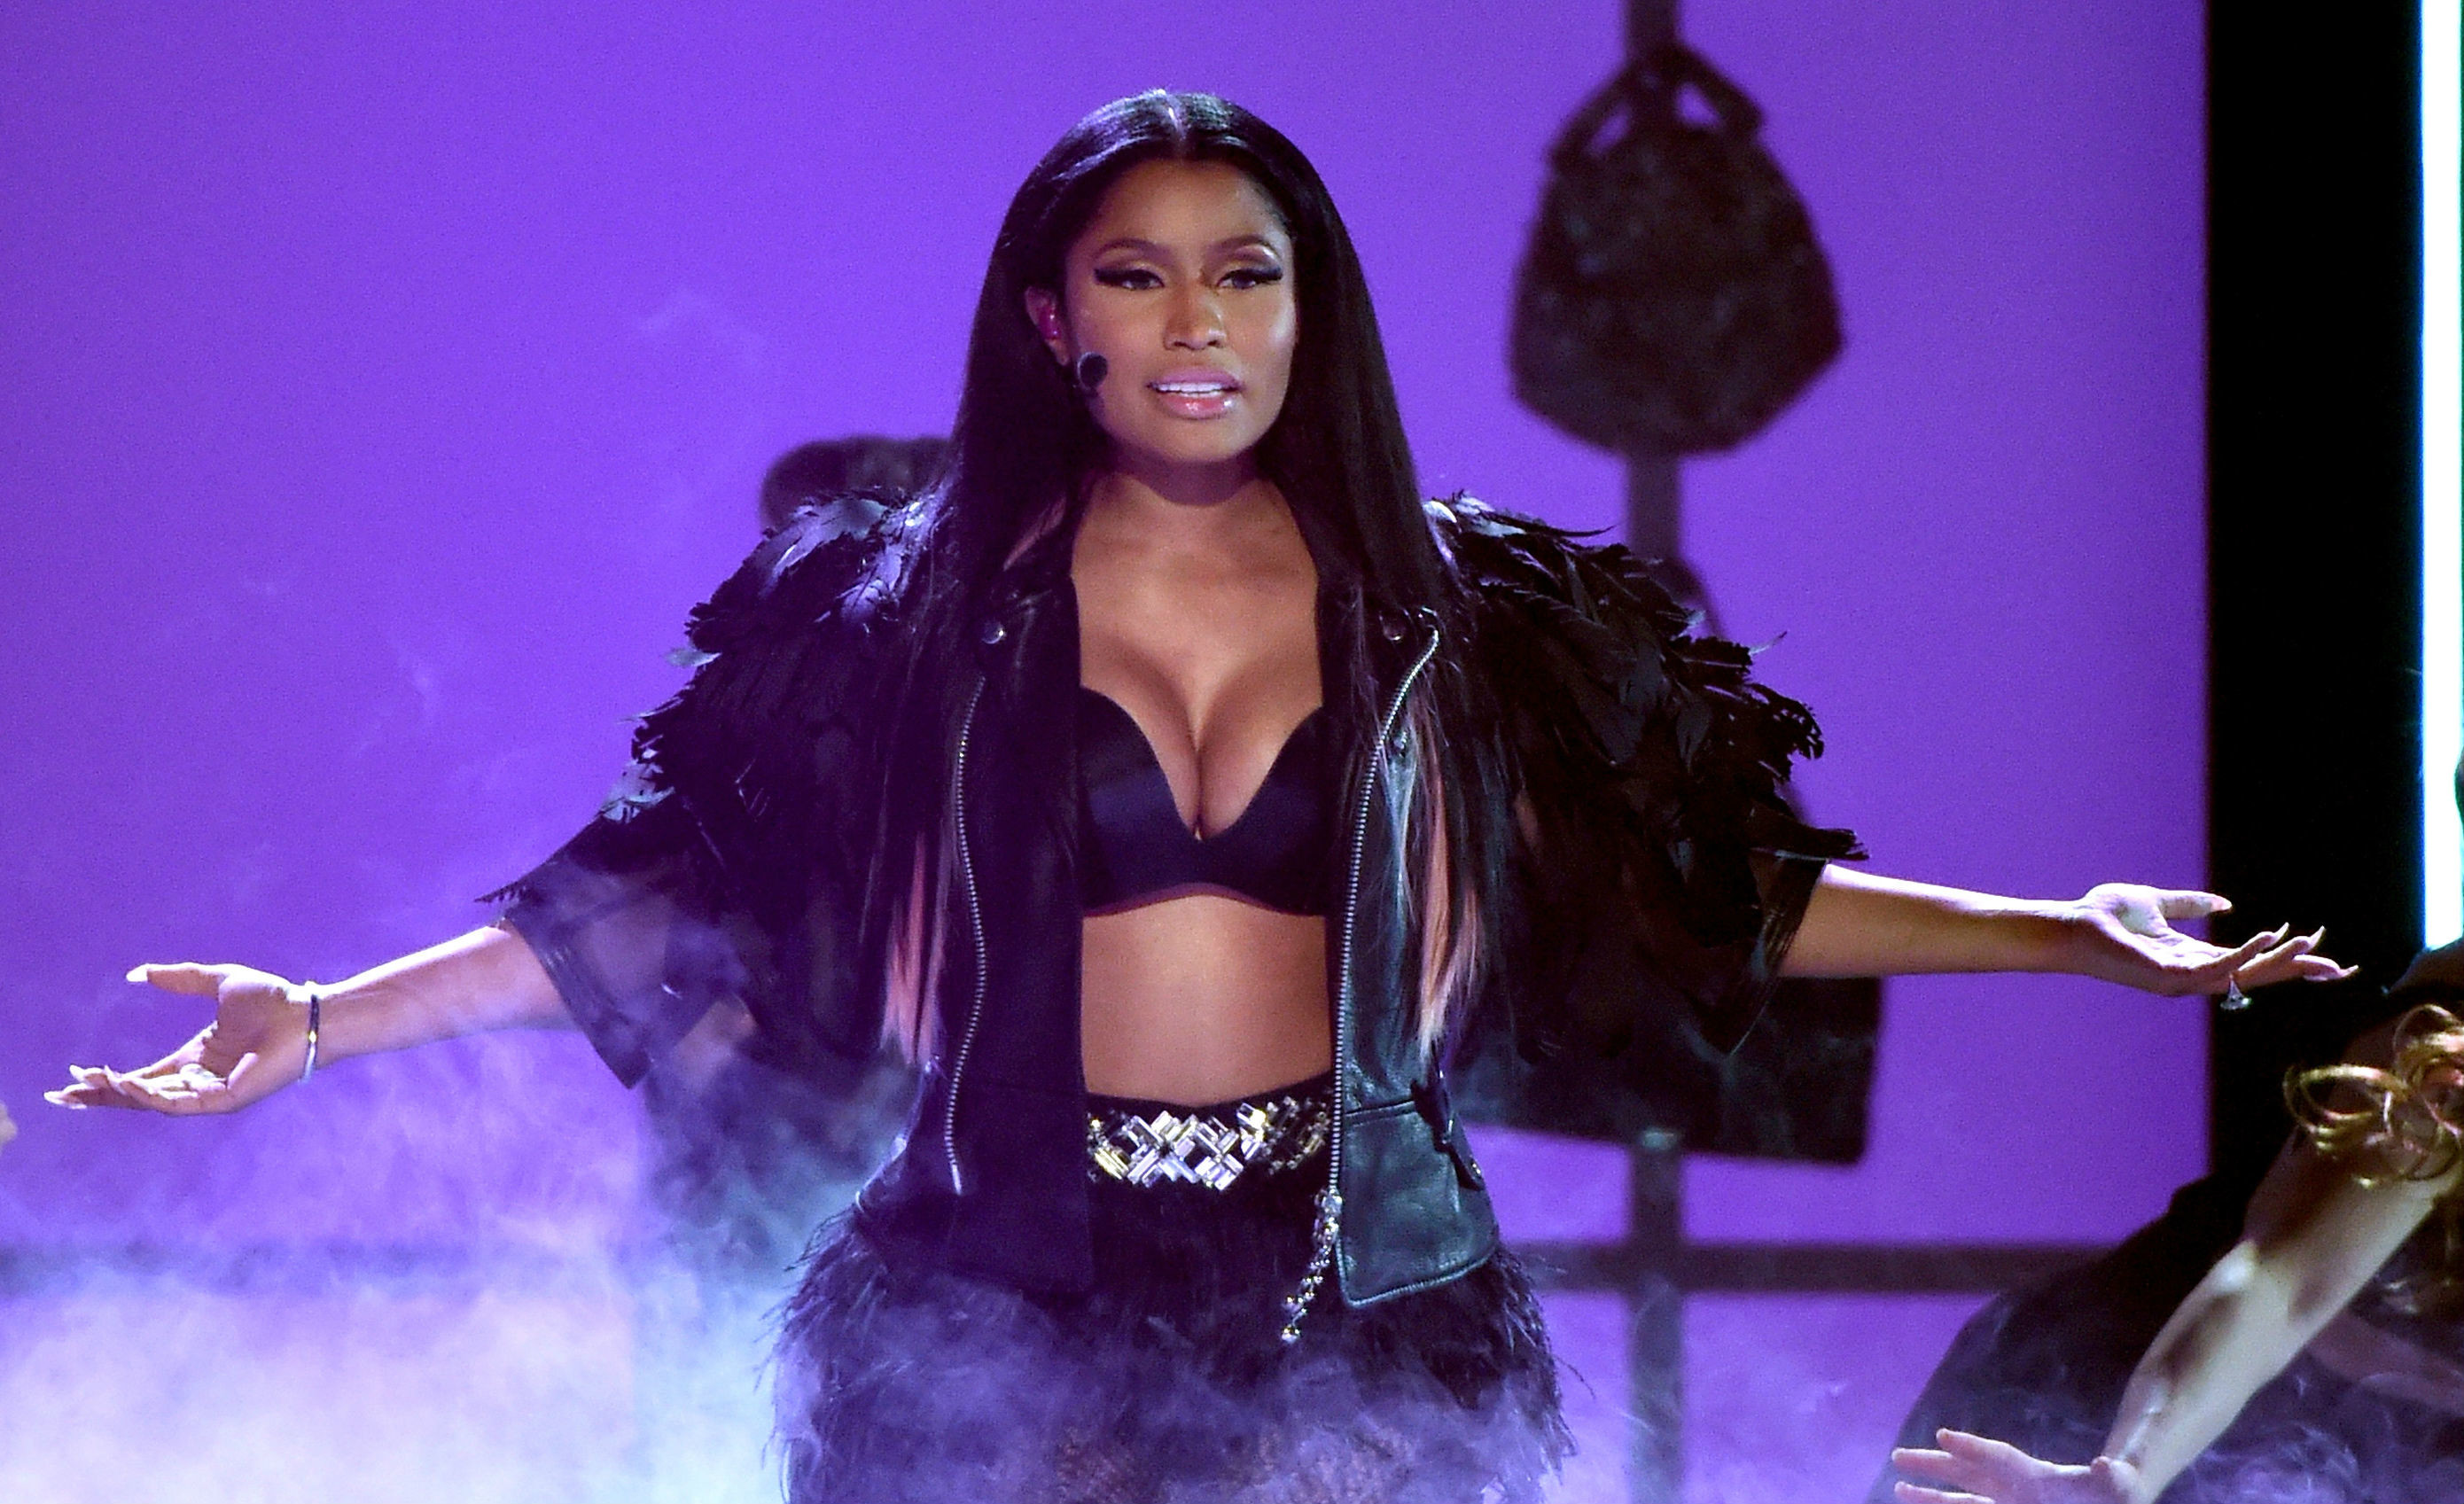 Nicki minaj wallpaper desktop 63 images 2780x1697 nicki minaj wallpapers hd voltagebd Image collections